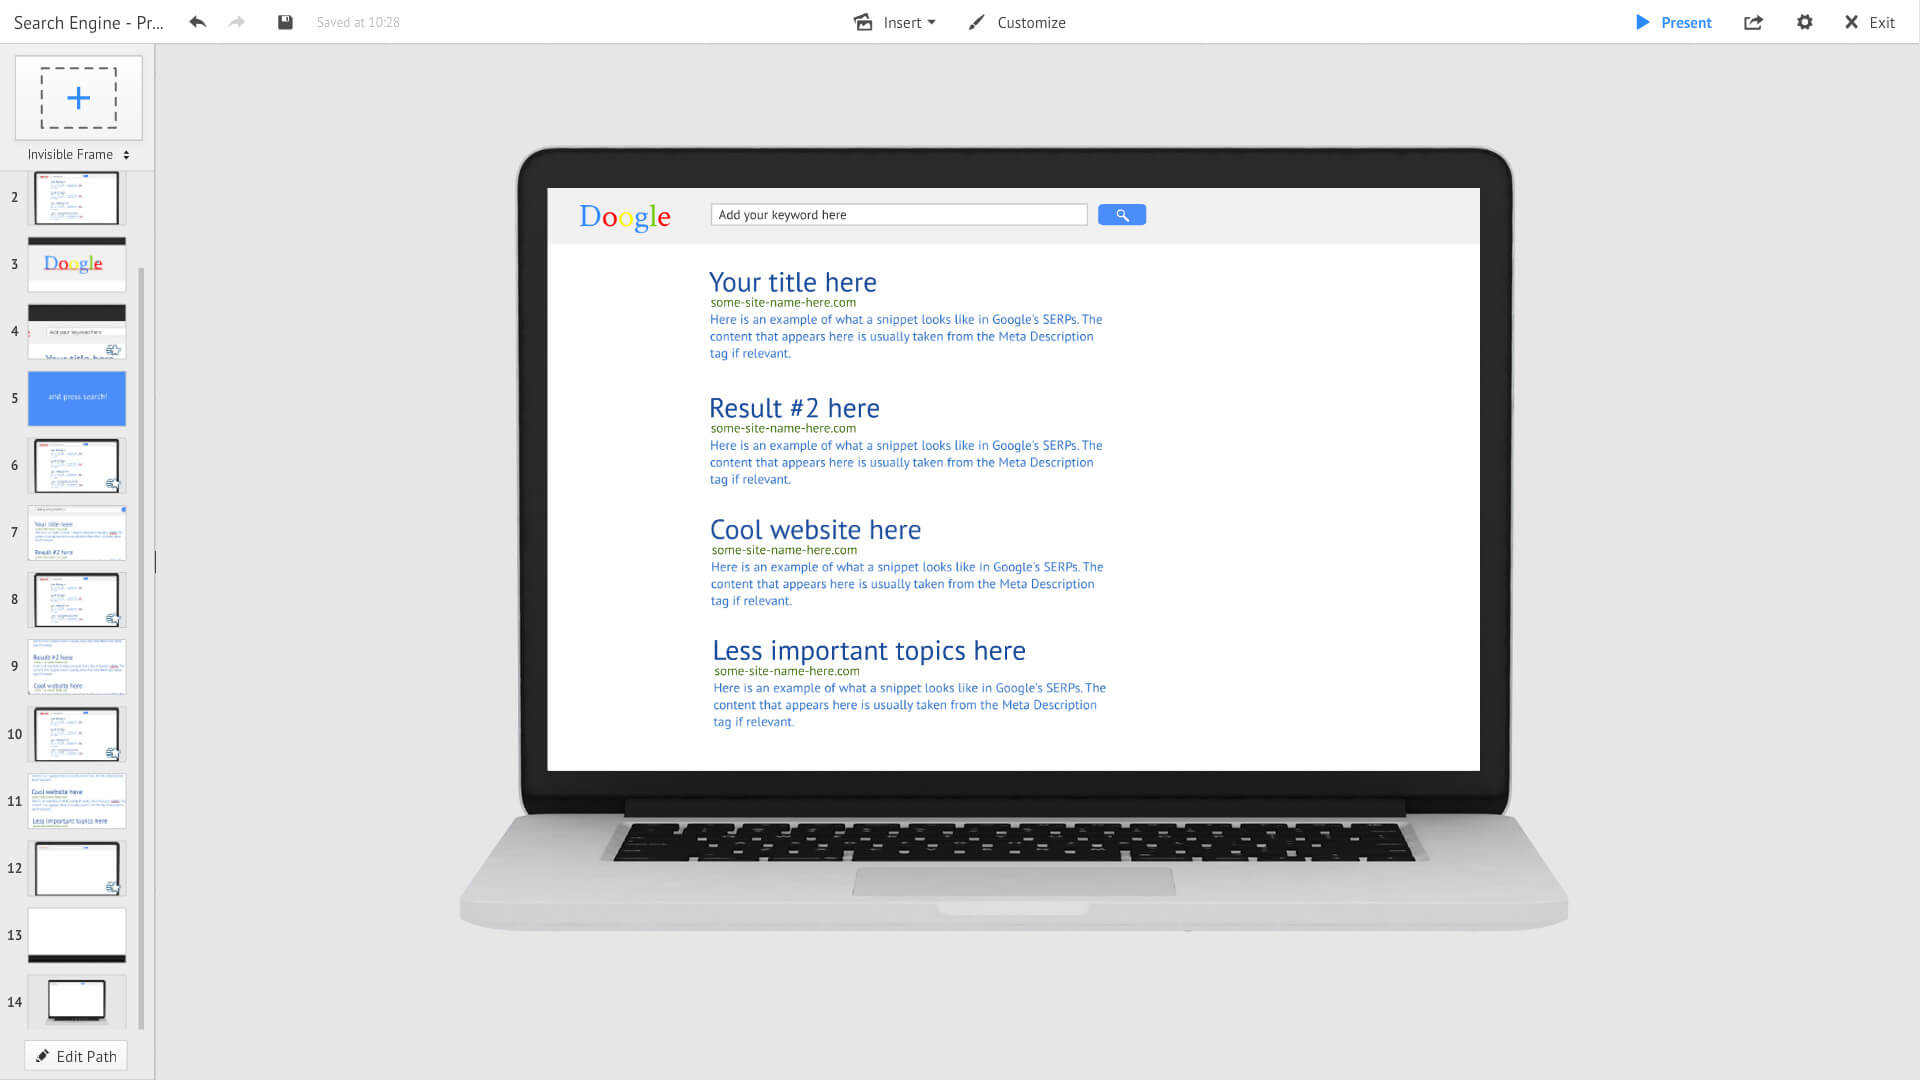 google-search-serp-results-mockup-prezi-template-for-presentations